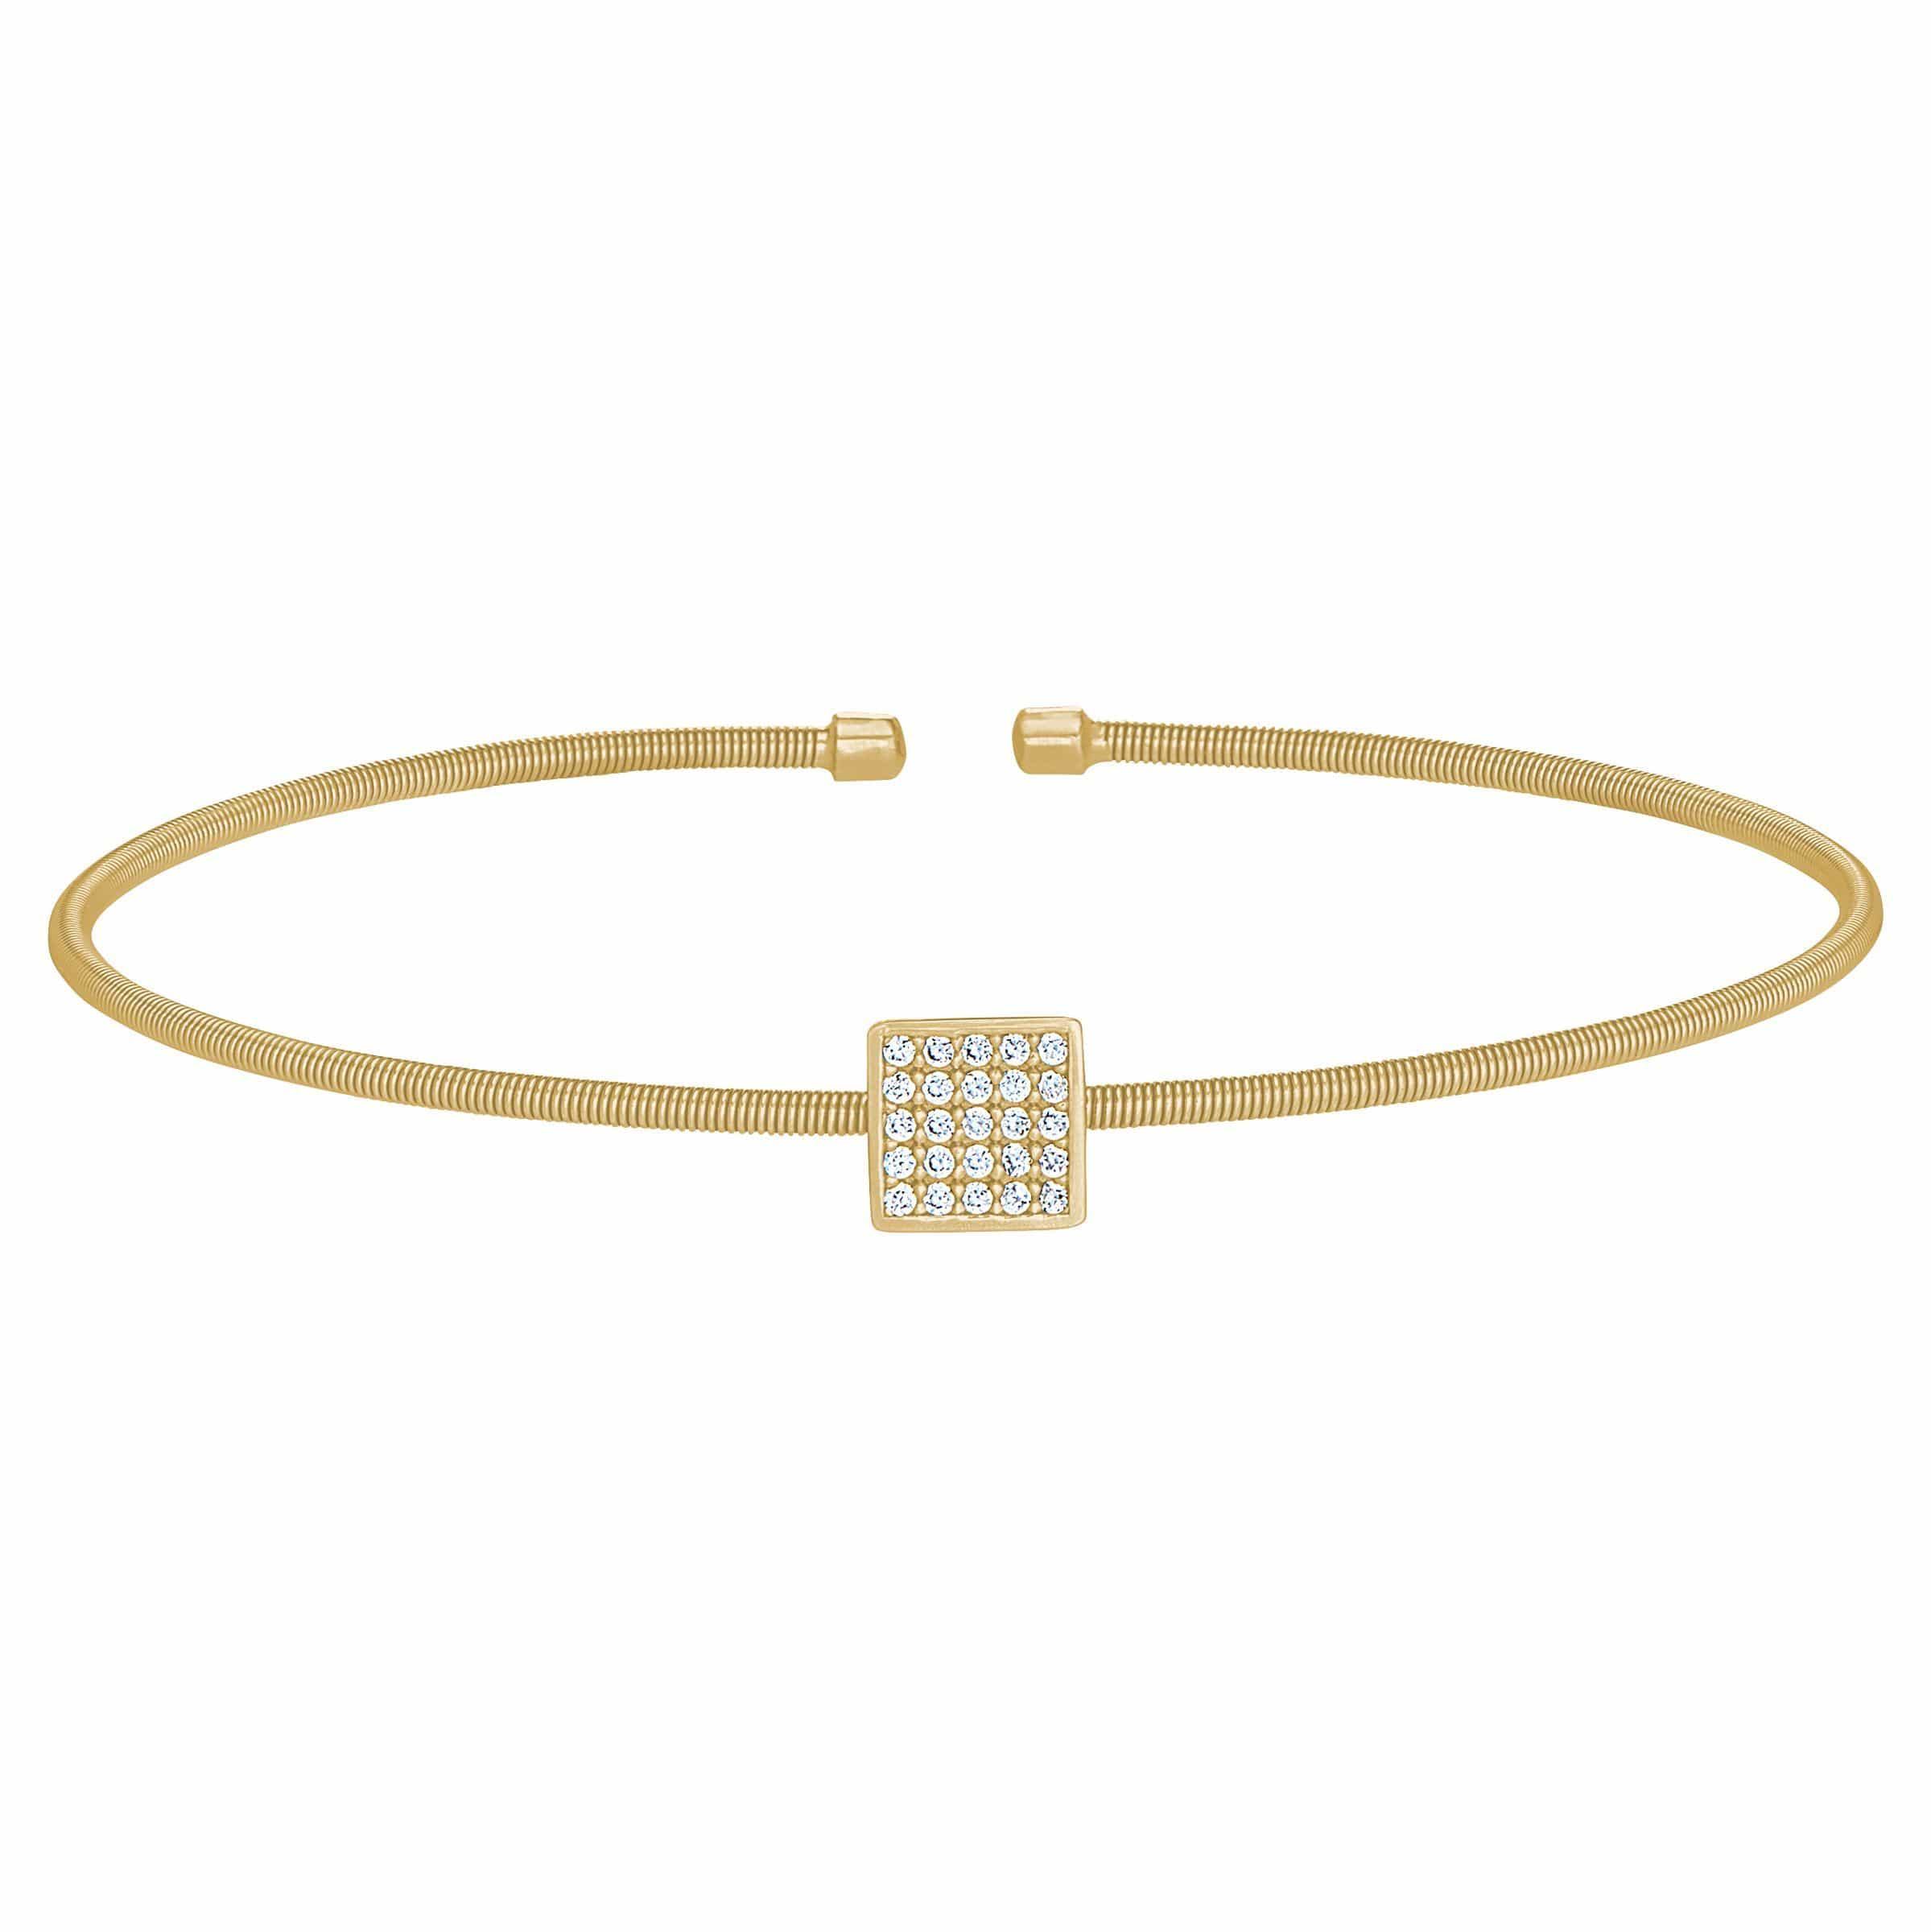 Gold Finish Sterling Silver Cable Cuff Square Bracelet - LL7081B-G-Kelly Waters-Renee Taylor Gallery